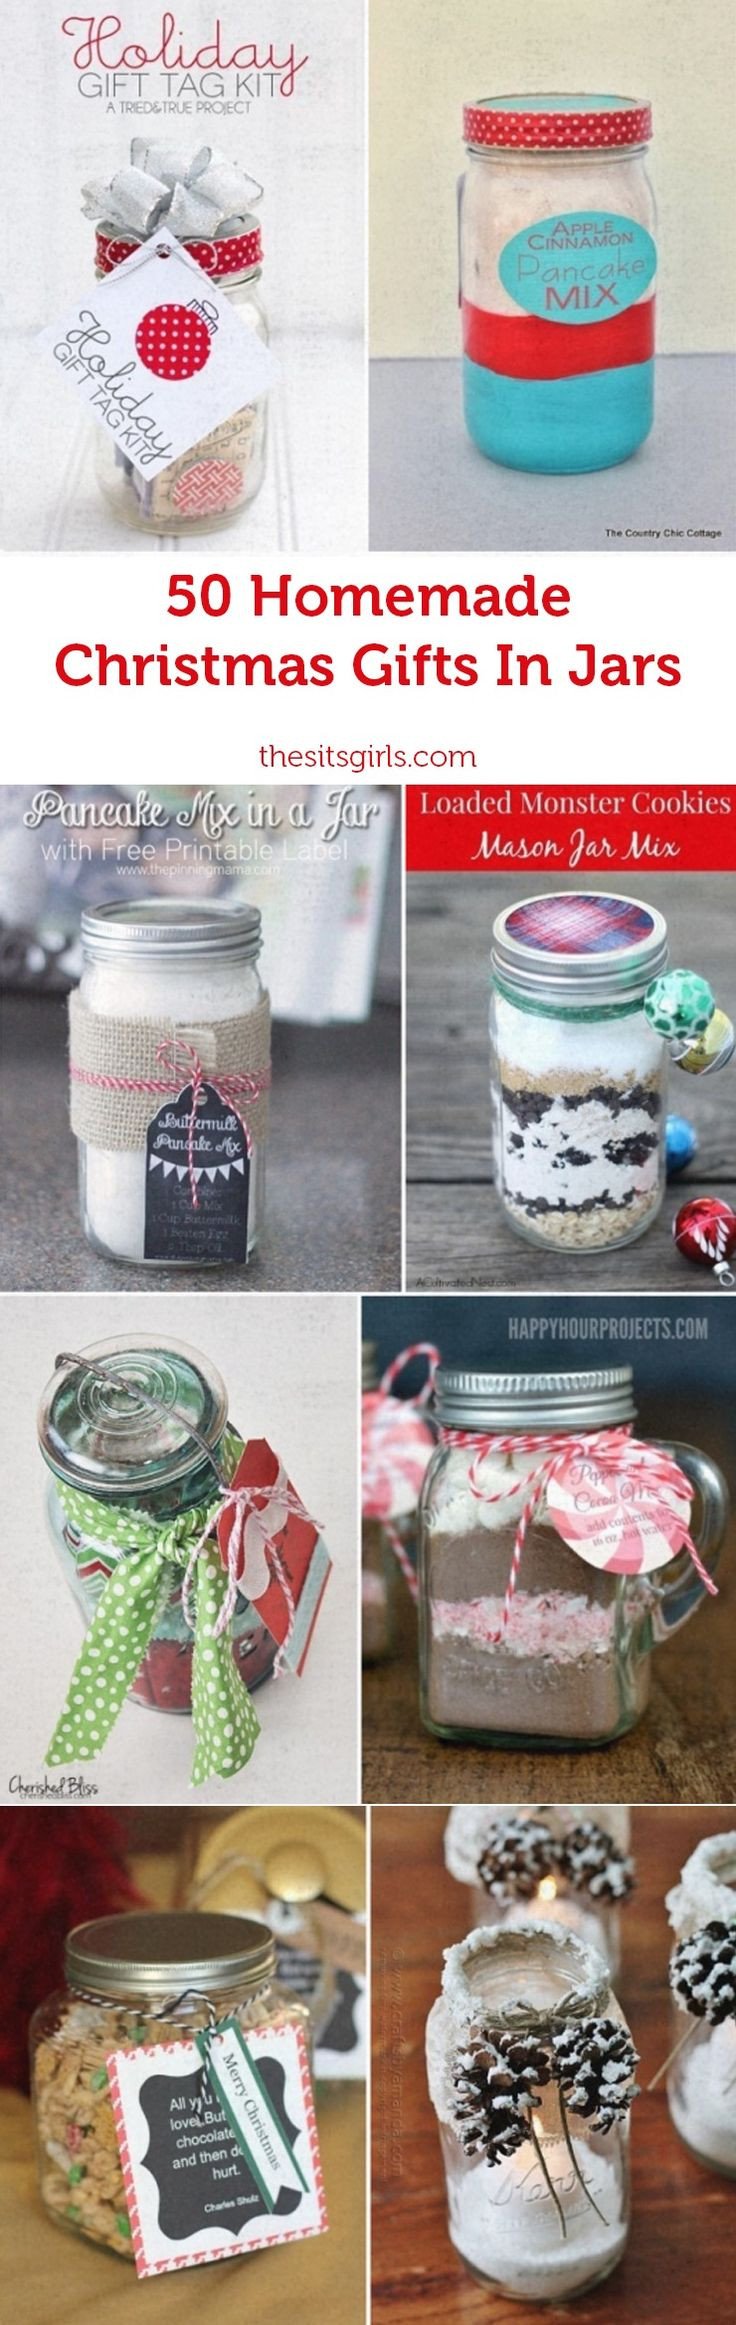 Best ideas about Girlfriend Christmas Gift Ideas . Save or Pin 1000 ideas about Girlfriend Christmas Gifts on Pinterest Now.